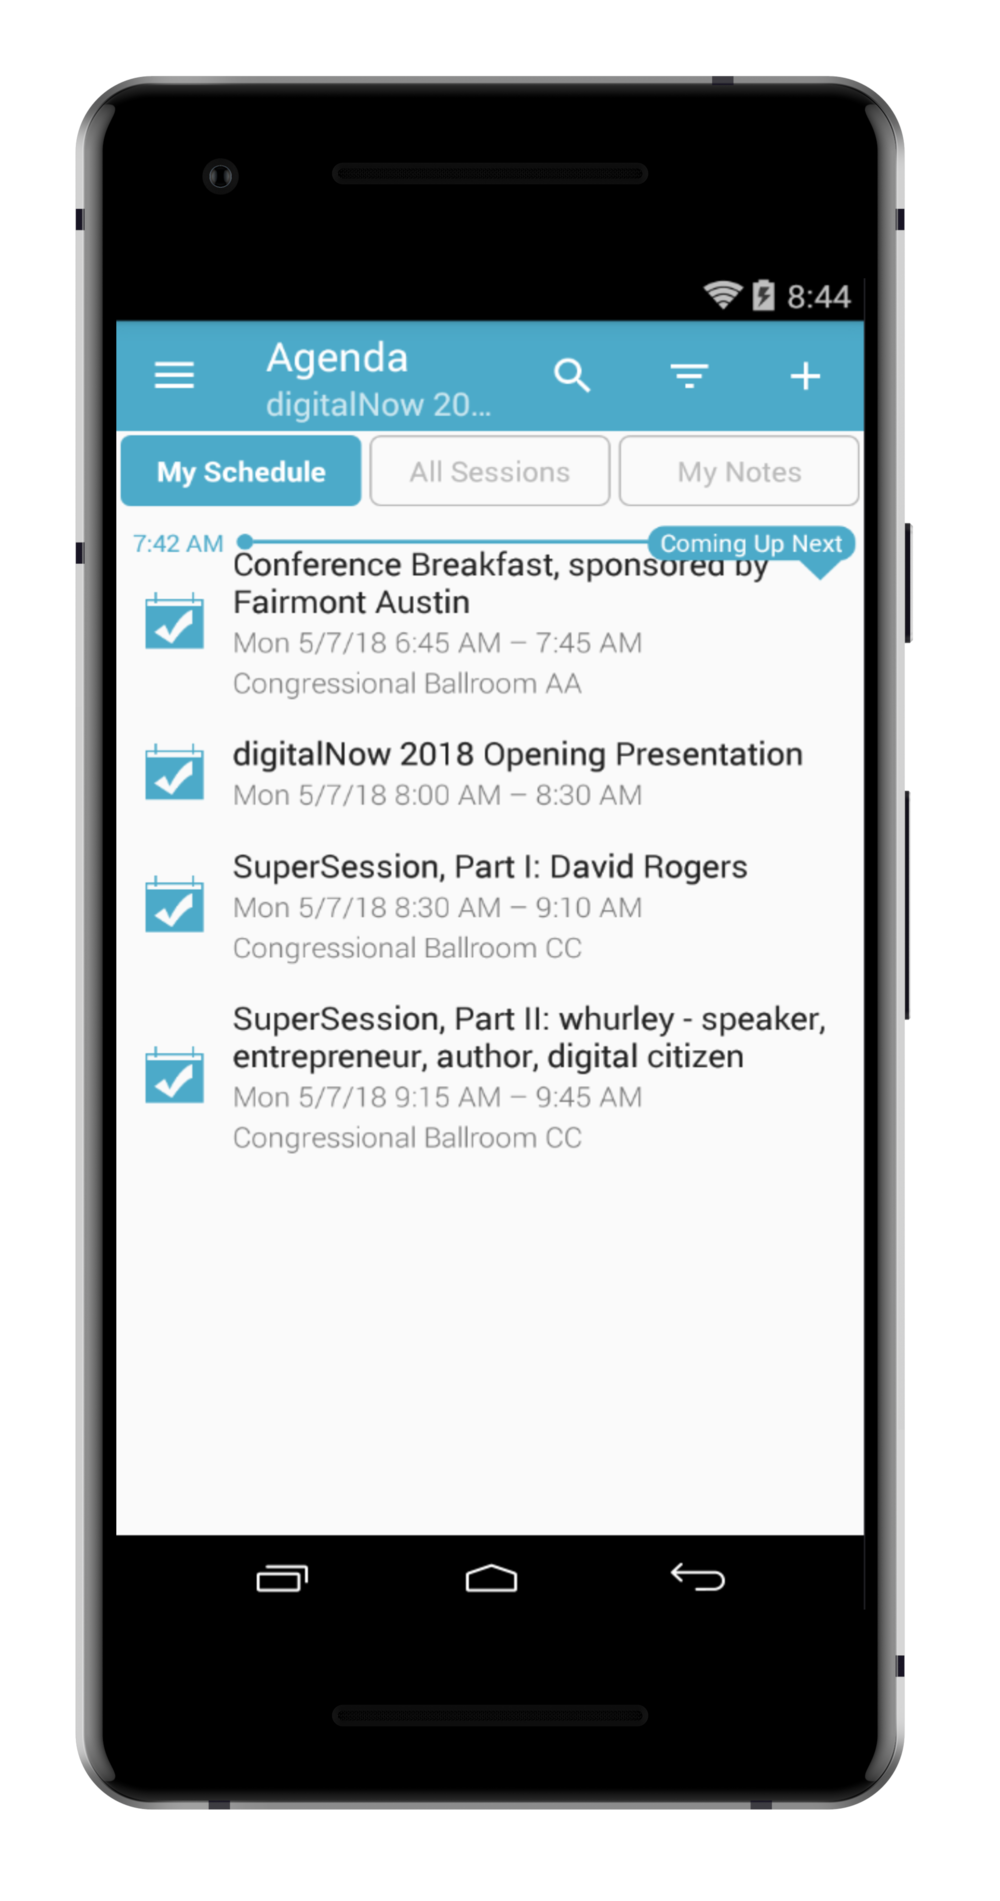 step 1. - FIRST SIGN IN TO THE APP USING YOUR LOG IN INFO AND THEN FROM THE MENU CLICK THE AGENDA TAB.